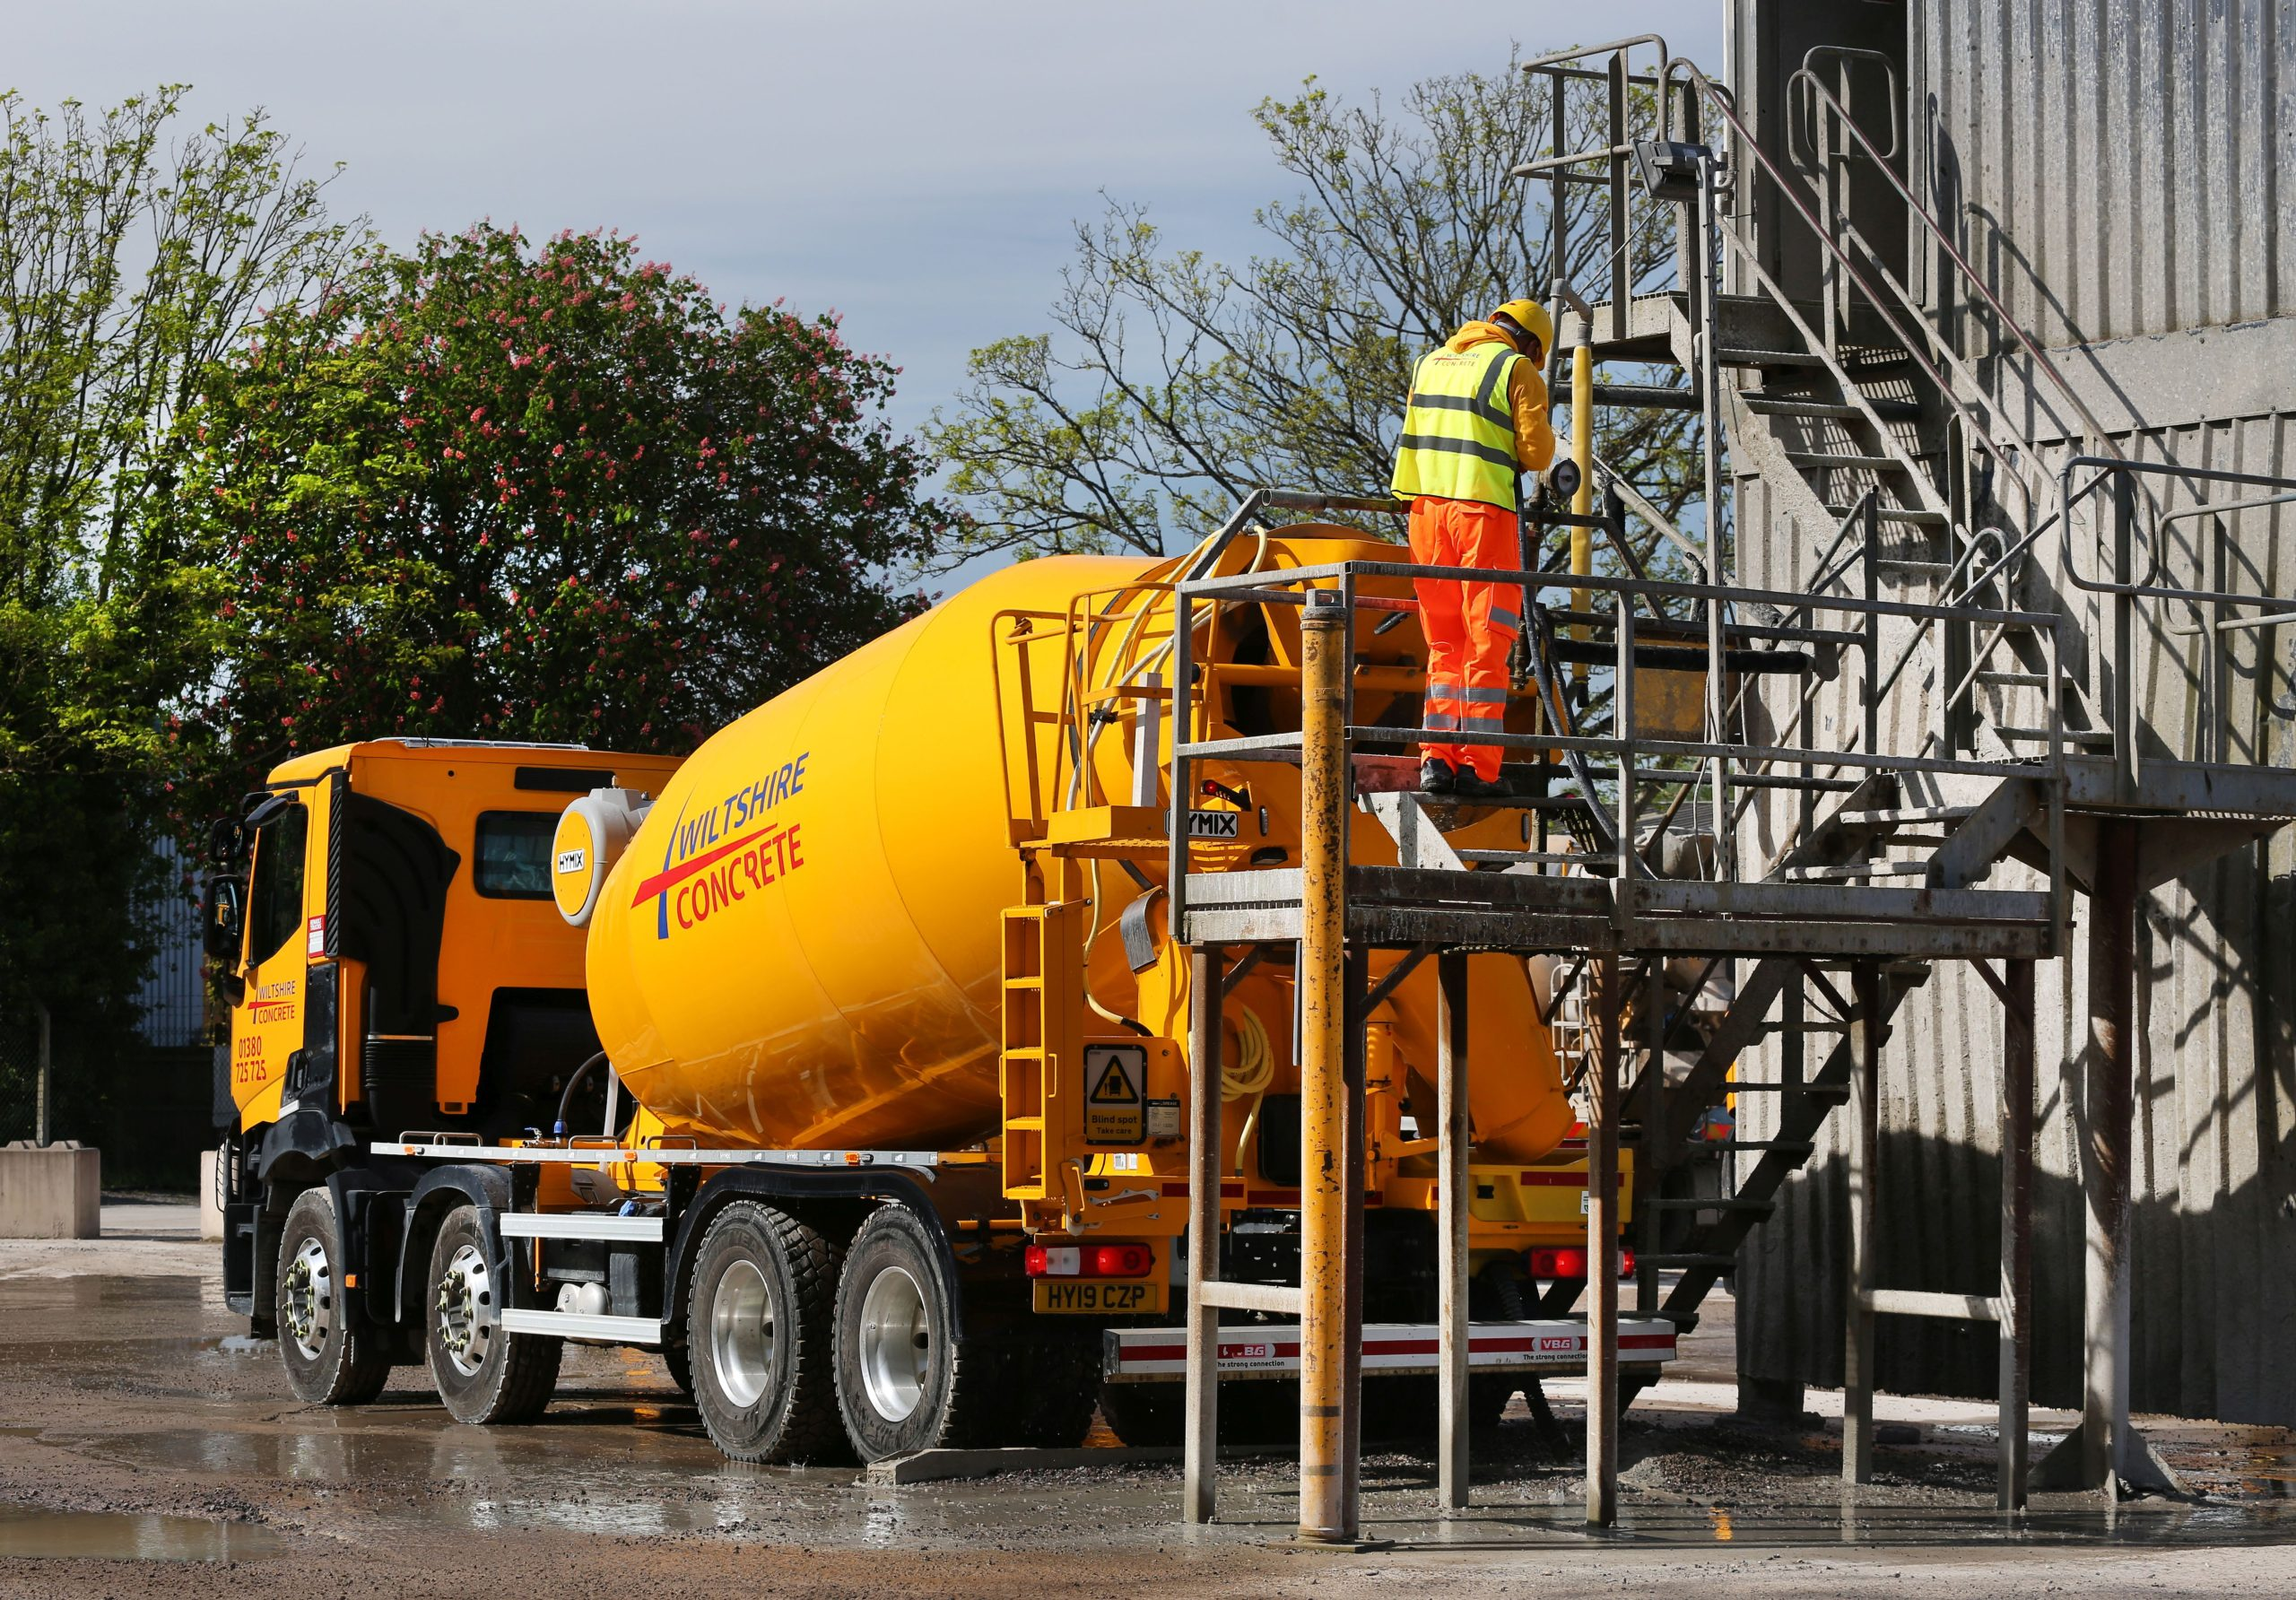 Concrete Mixer and Operative at Wiltshire Concrete